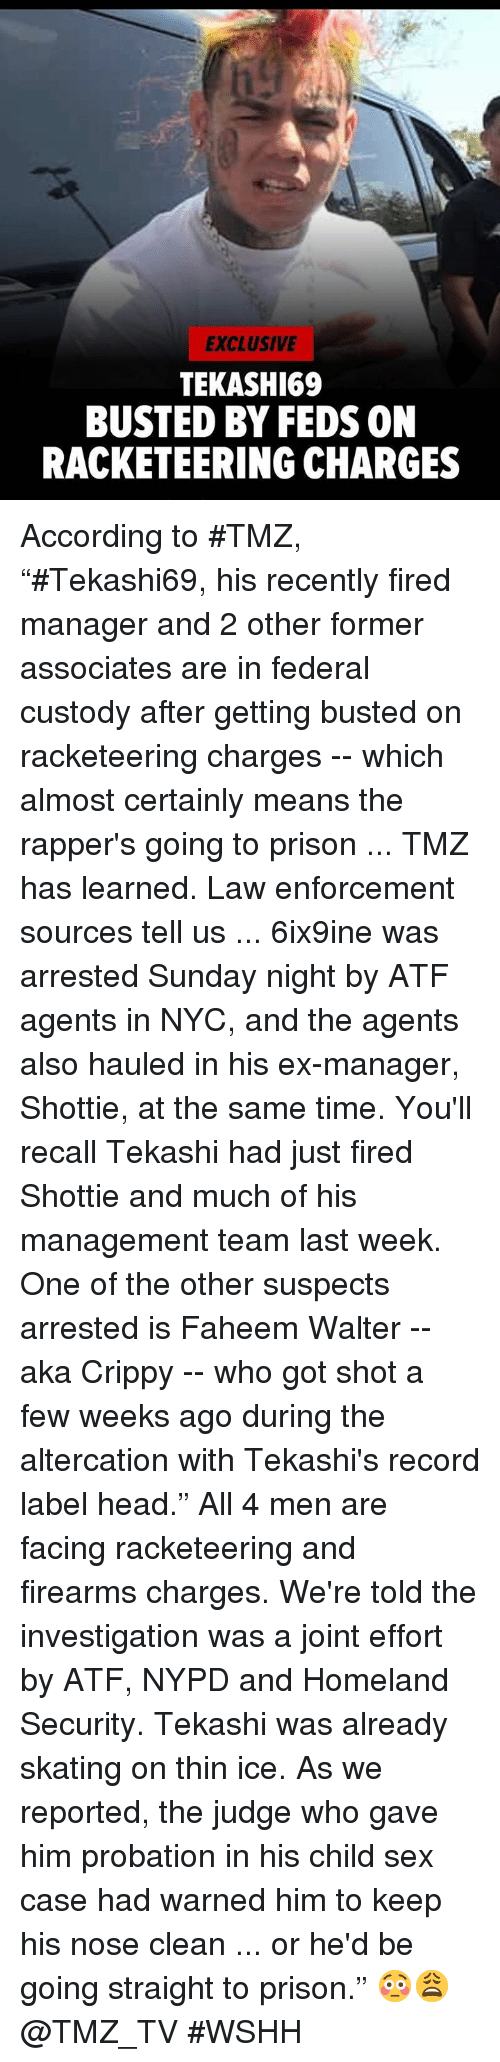 """Head, Sex, and Wshh: EXCLUSIVE  TEKASHI69  BUSTED BY FEDS ON  RACKETEERING CHARGES According to #TMZ, """"#Tekashi69, his recently fired manager and 2 other former associates are in federal custody after getting busted on racketeering charges -- which almost certainly means the rapper's going to prison ... TMZ has learned.  Law enforcement sources tell us ... 6ix9ine was arrested Sunday night by ATF agents in NYC, and the agents also hauled in his ex-manager, Shottie, at the same time. You'll recall Tekashi had just fired Shottie and much of his management team last week.  One of the other suspects arrested is Faheem Walter -- aka Crippy -- who got shot a few weeks ago during the altercation with Tekashi's record label head."""" All 4 men are facing racketeering and firearms charges. We're told the investigation was a joint effort by ATF, NYPD and Homeland Security.  Tekashi was already skating on thin ice. As we reported, the judge who gave him probation in his child sex case had warned him to keep his nose clean ... or he'd be going straight to prison."""" 😳😩 @TMZ_TV #WSHH"""